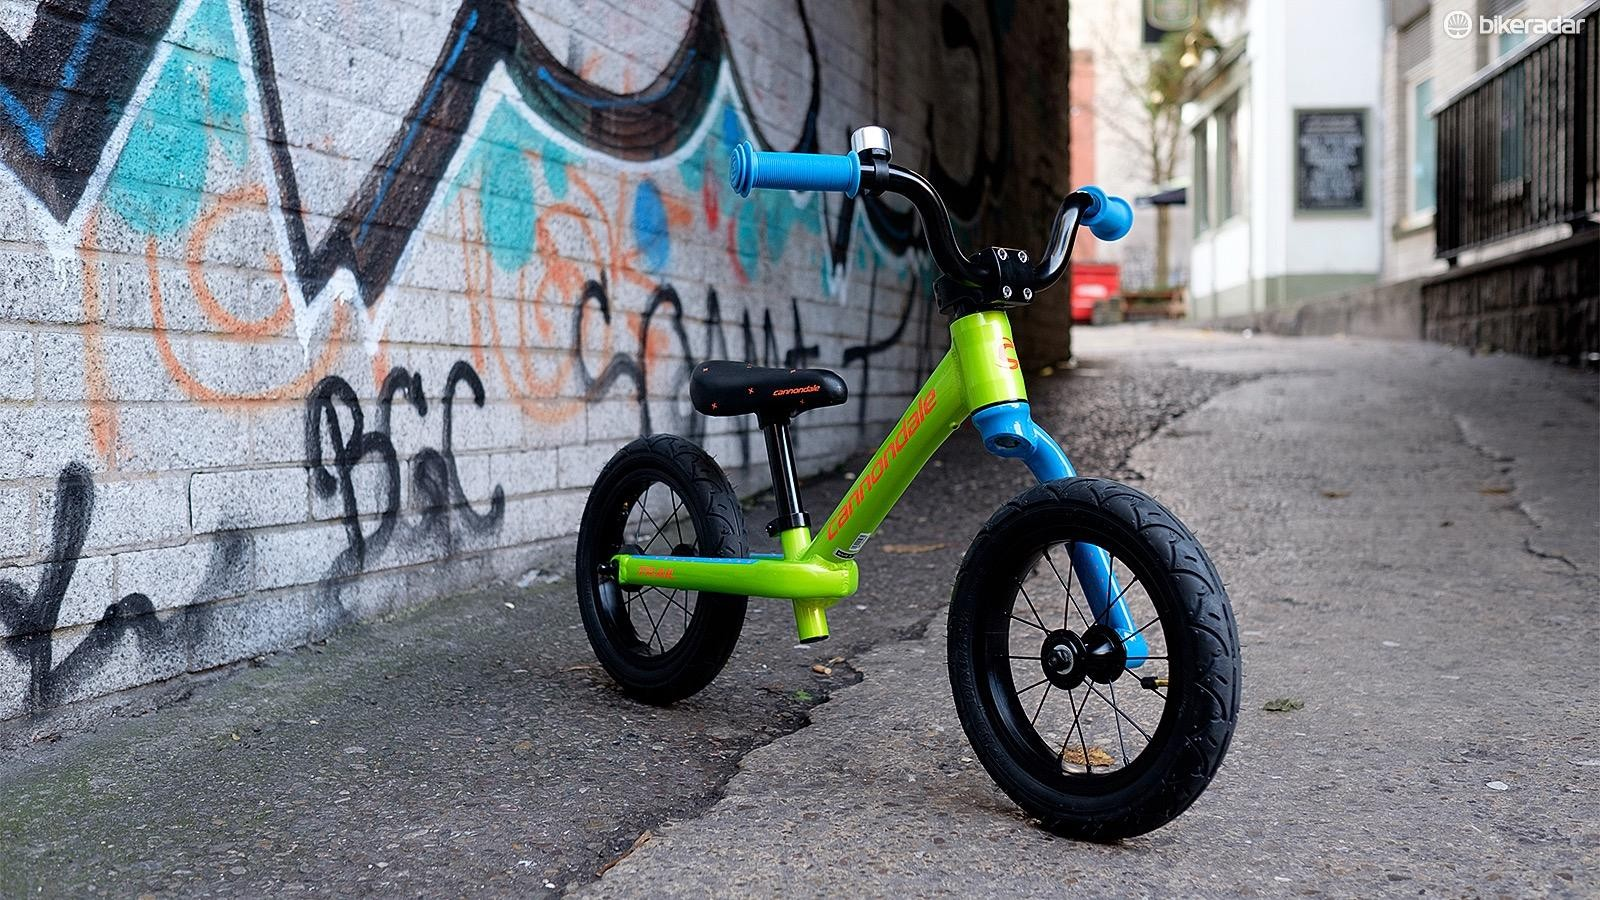 b0d08613538 You can now buy a balance bike with a Lefty fork - BikeRadar